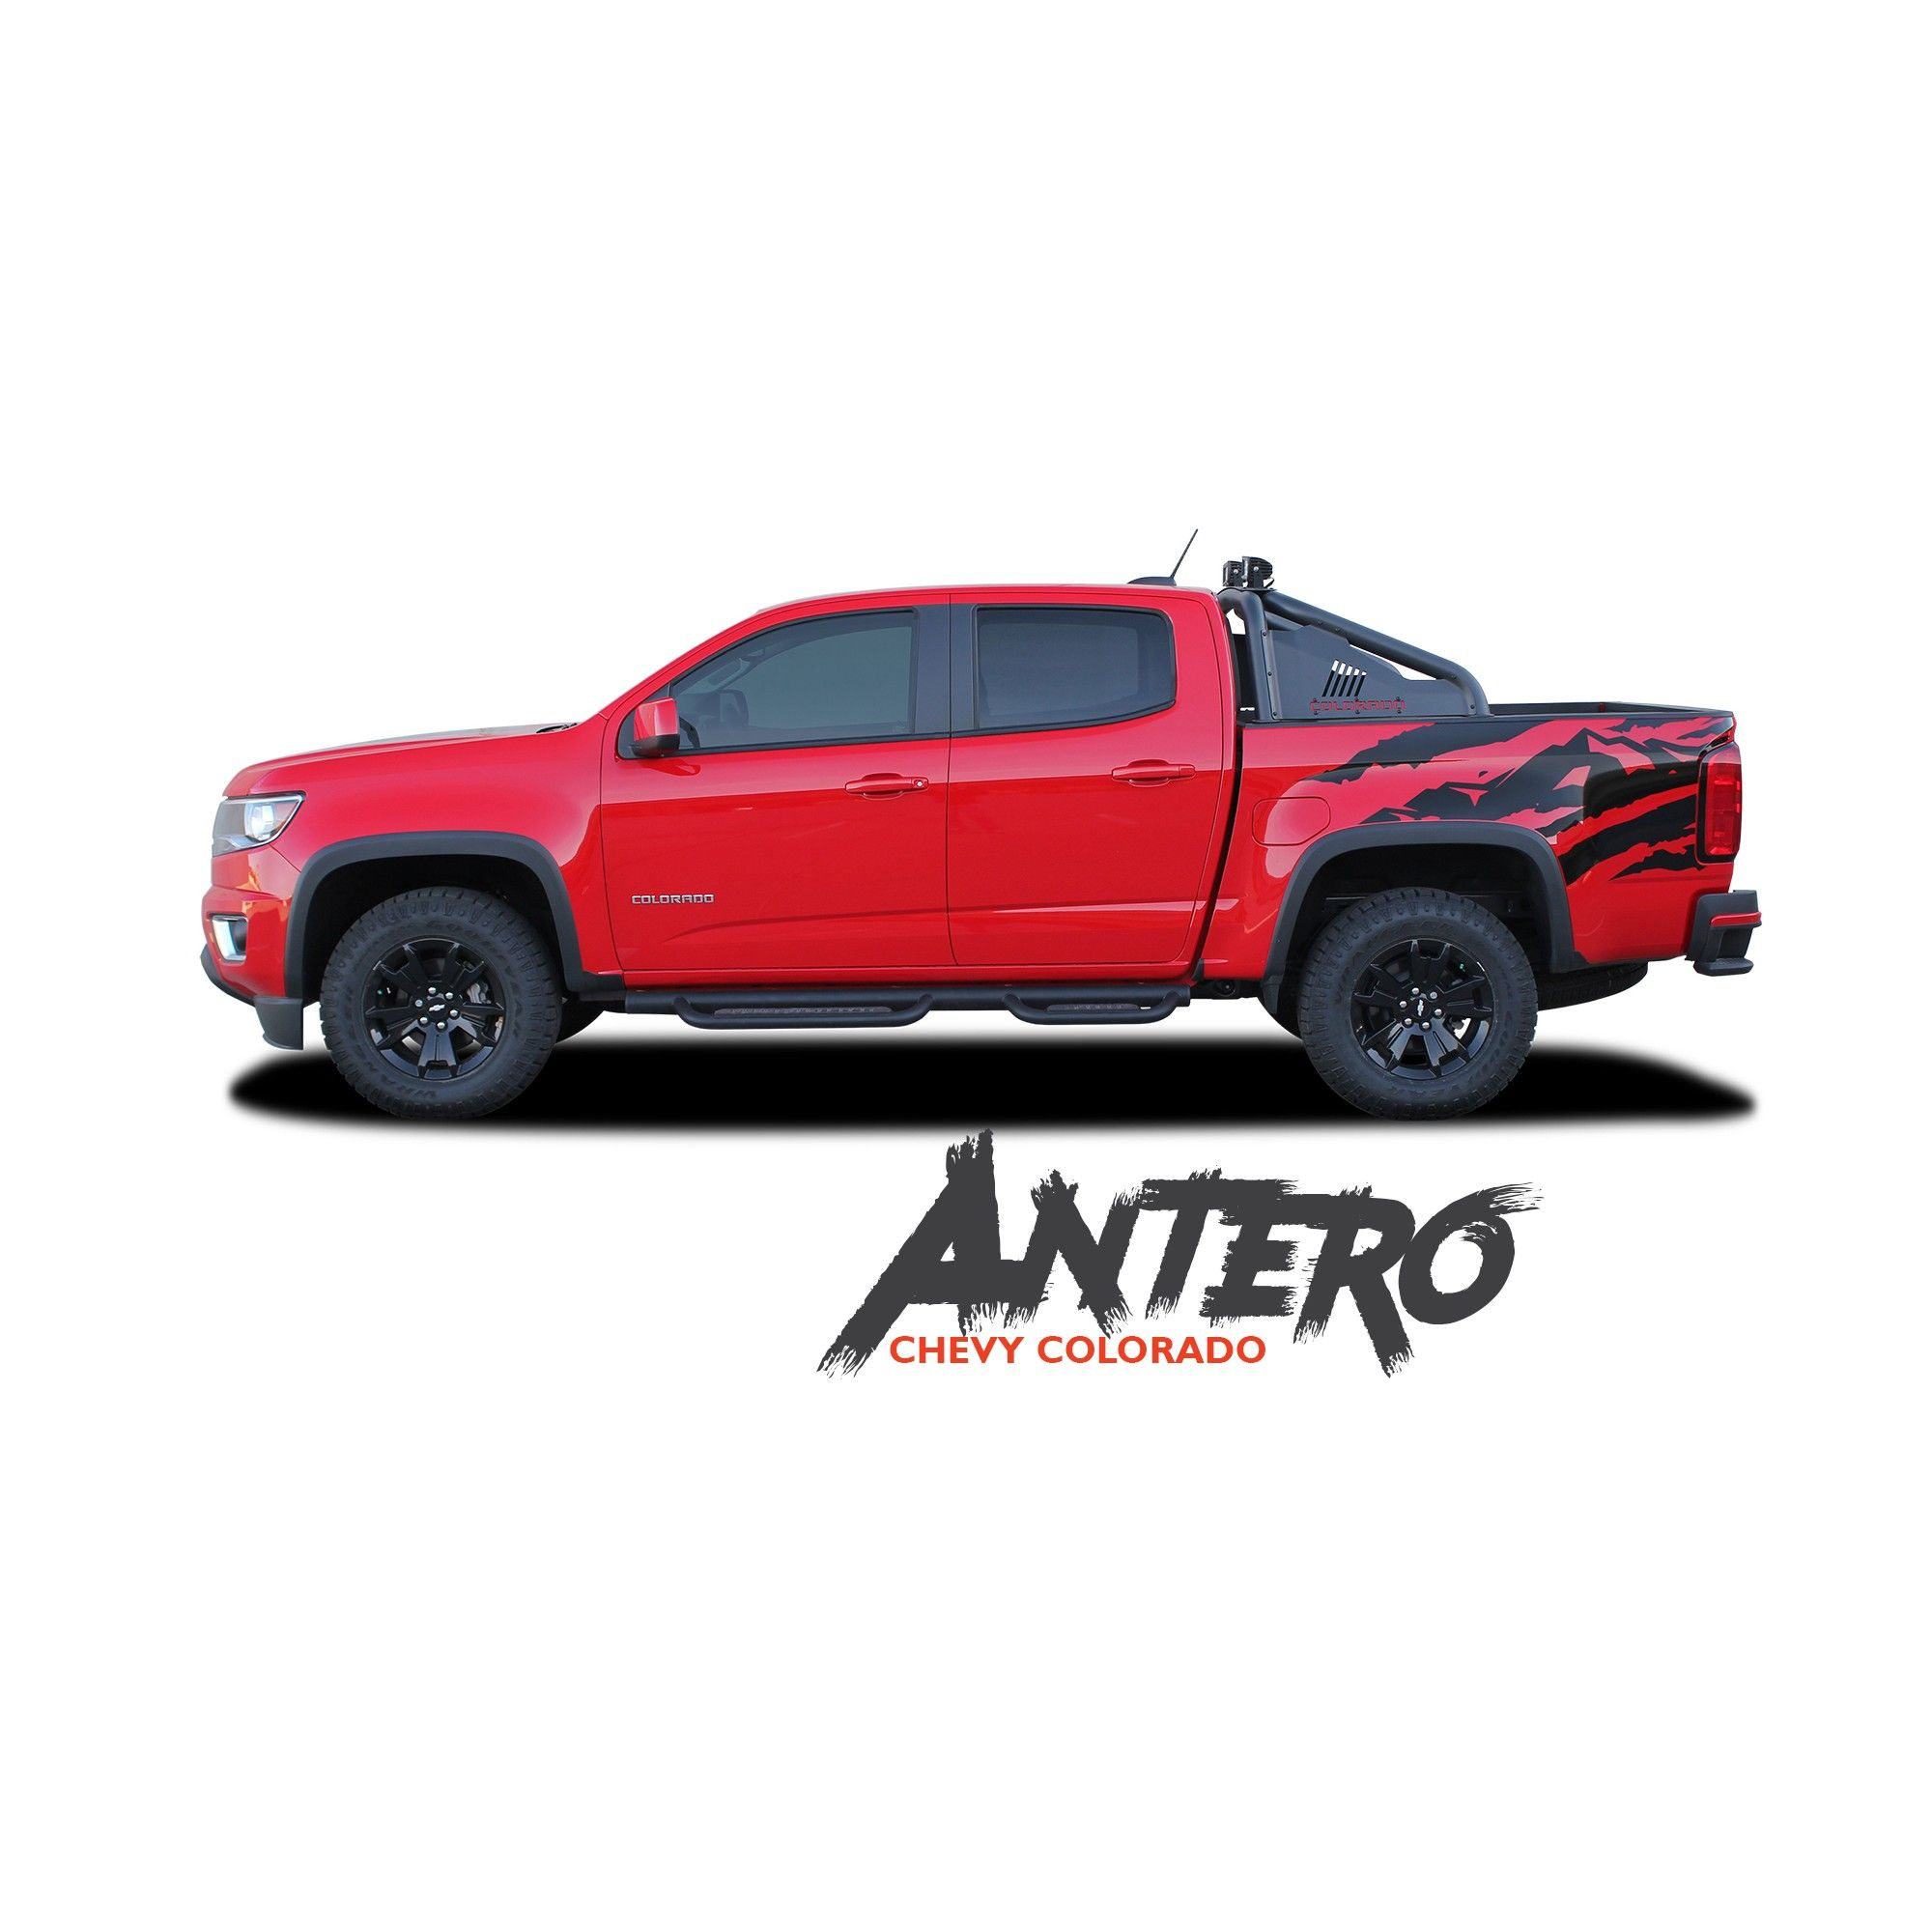 Chevy Colorado Graphics Antero Rear Truck Bed Accent Vinyl Decal Stripe Kit 2017 2016 2018